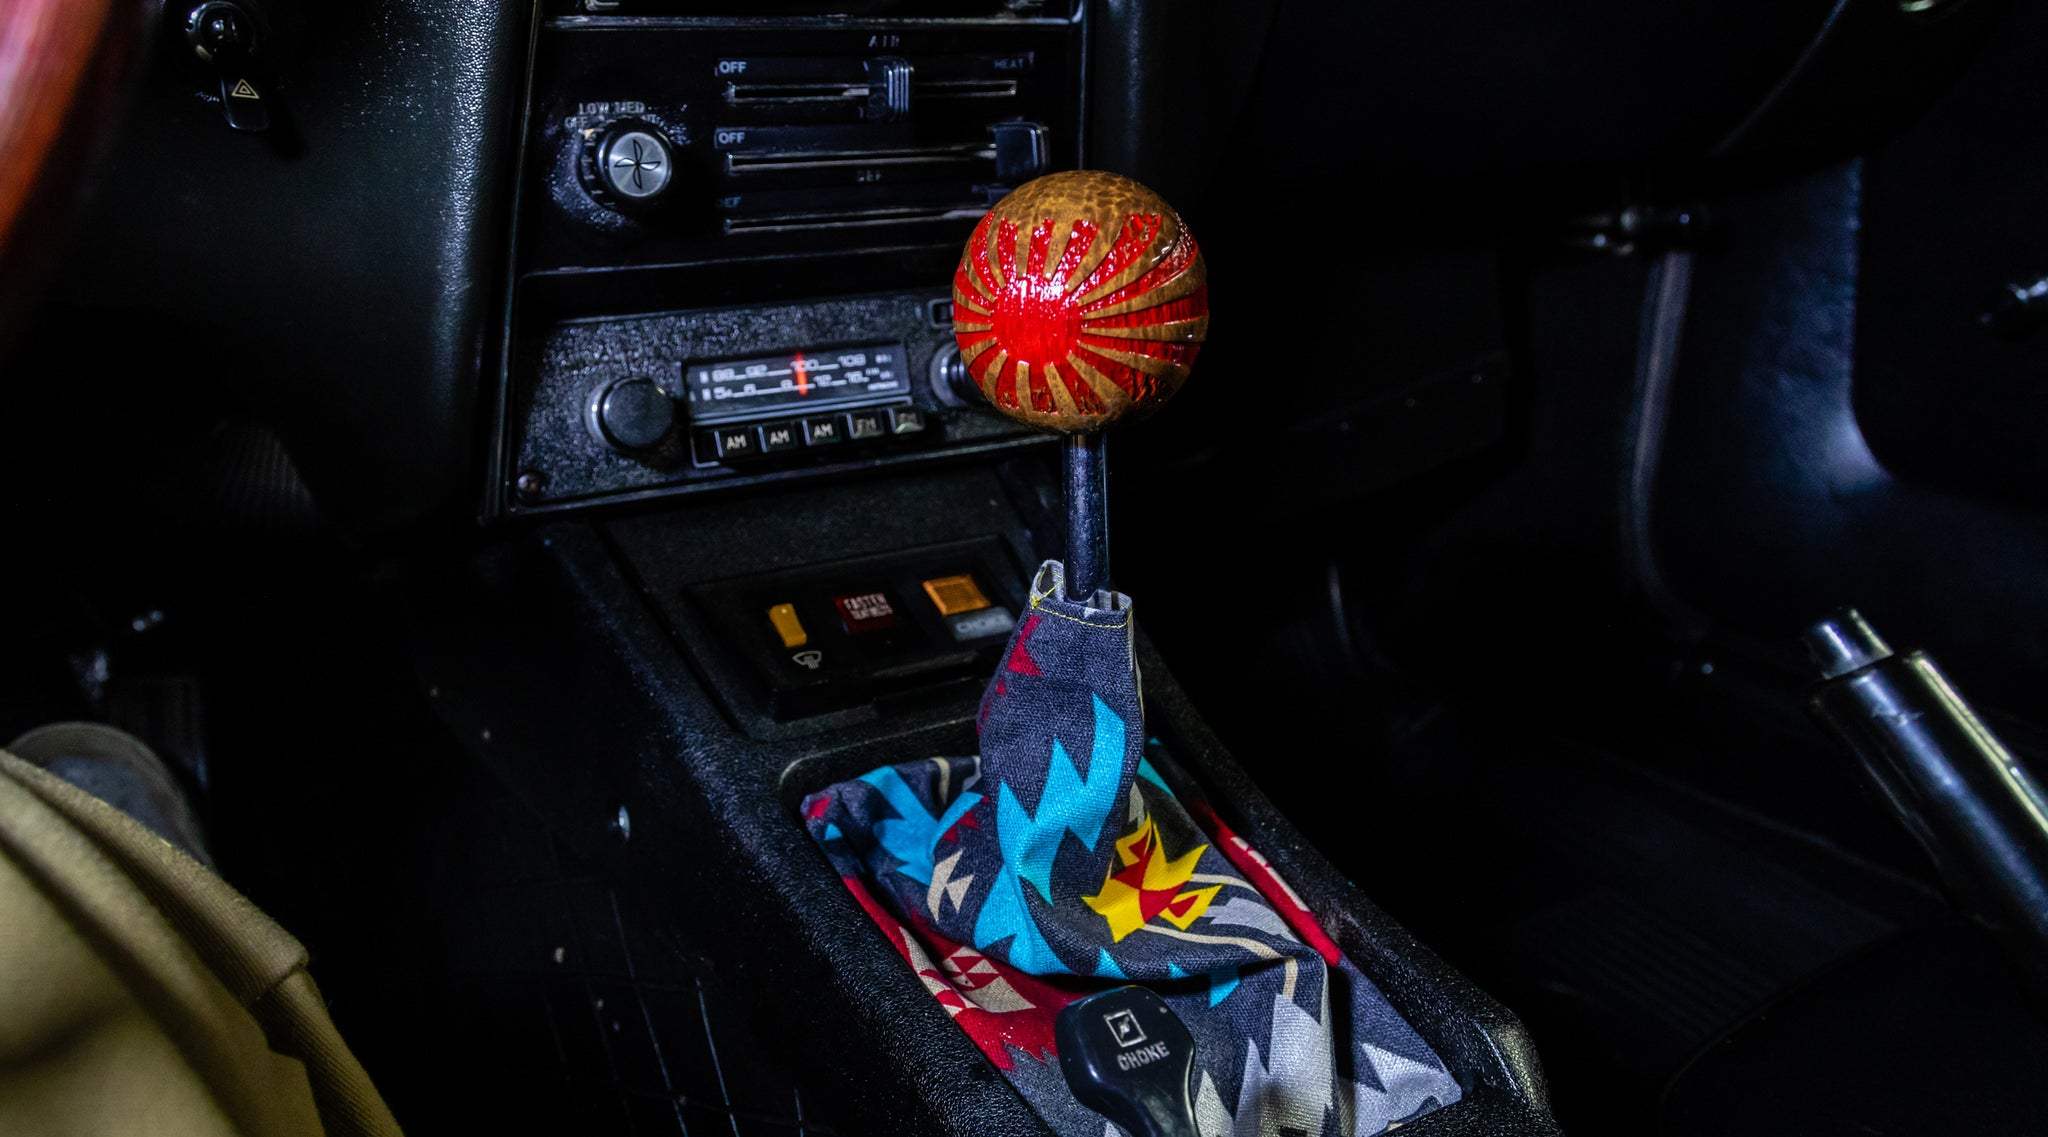 BAM SHIFTS Bamboo Shift Knobs and Accessories